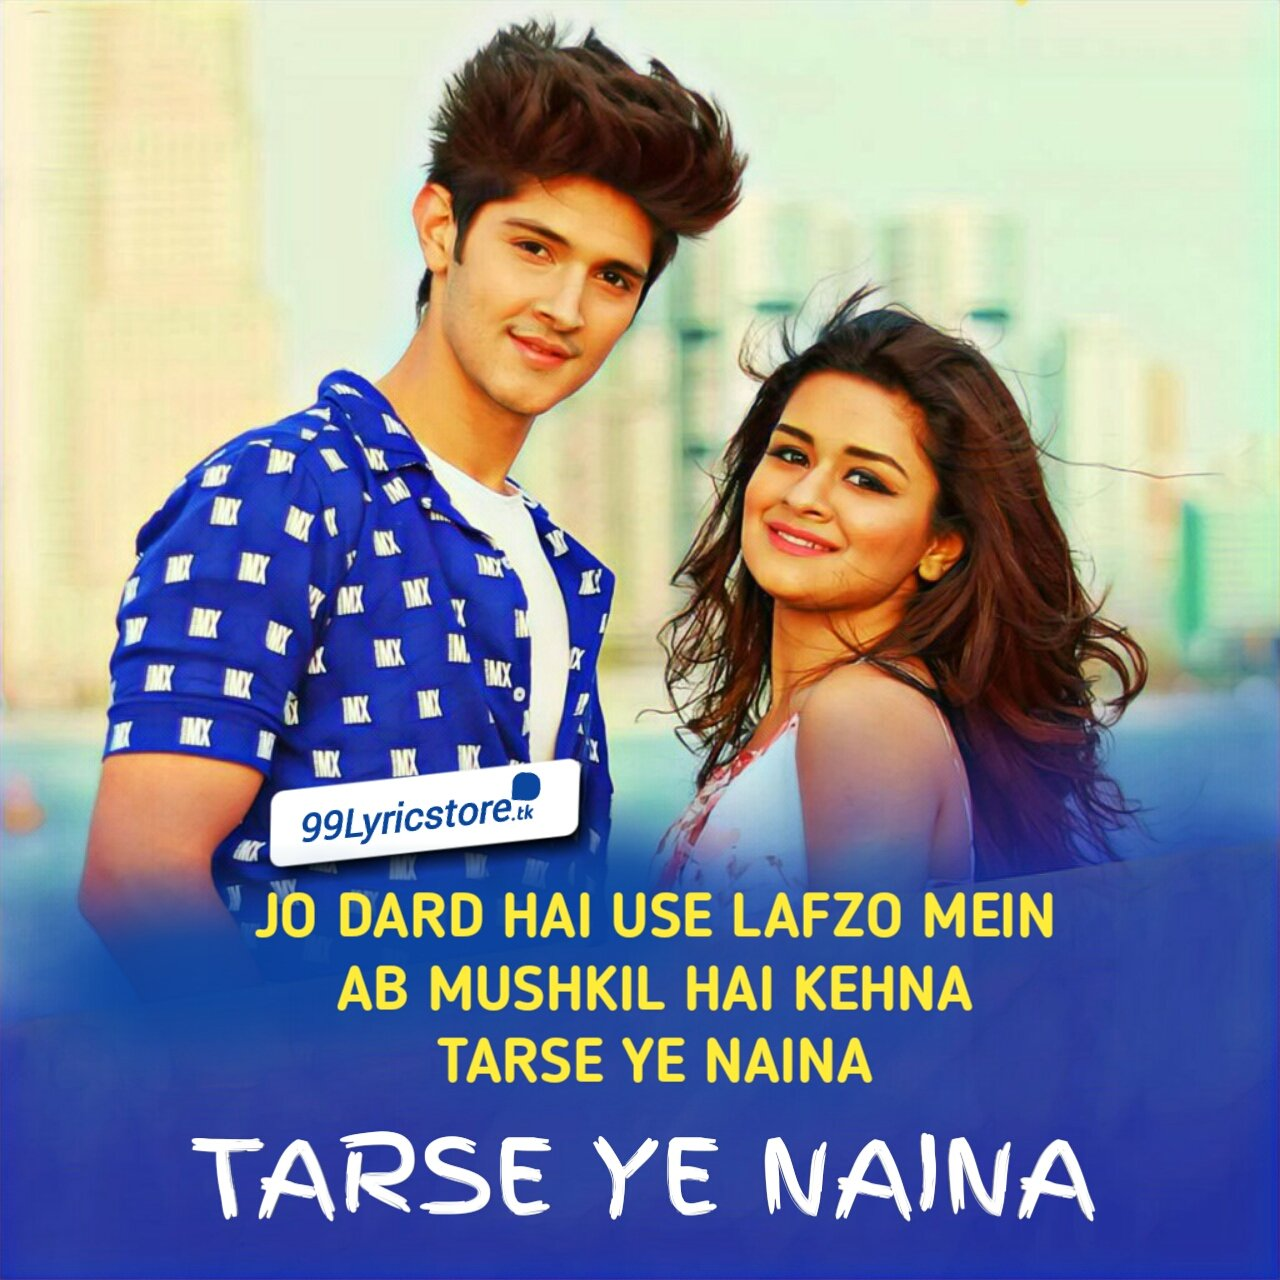 Tarse Ye Naina Sad Song Lyrics written by Kumaar song Starring Avneet Kaur and Rohan Mehra